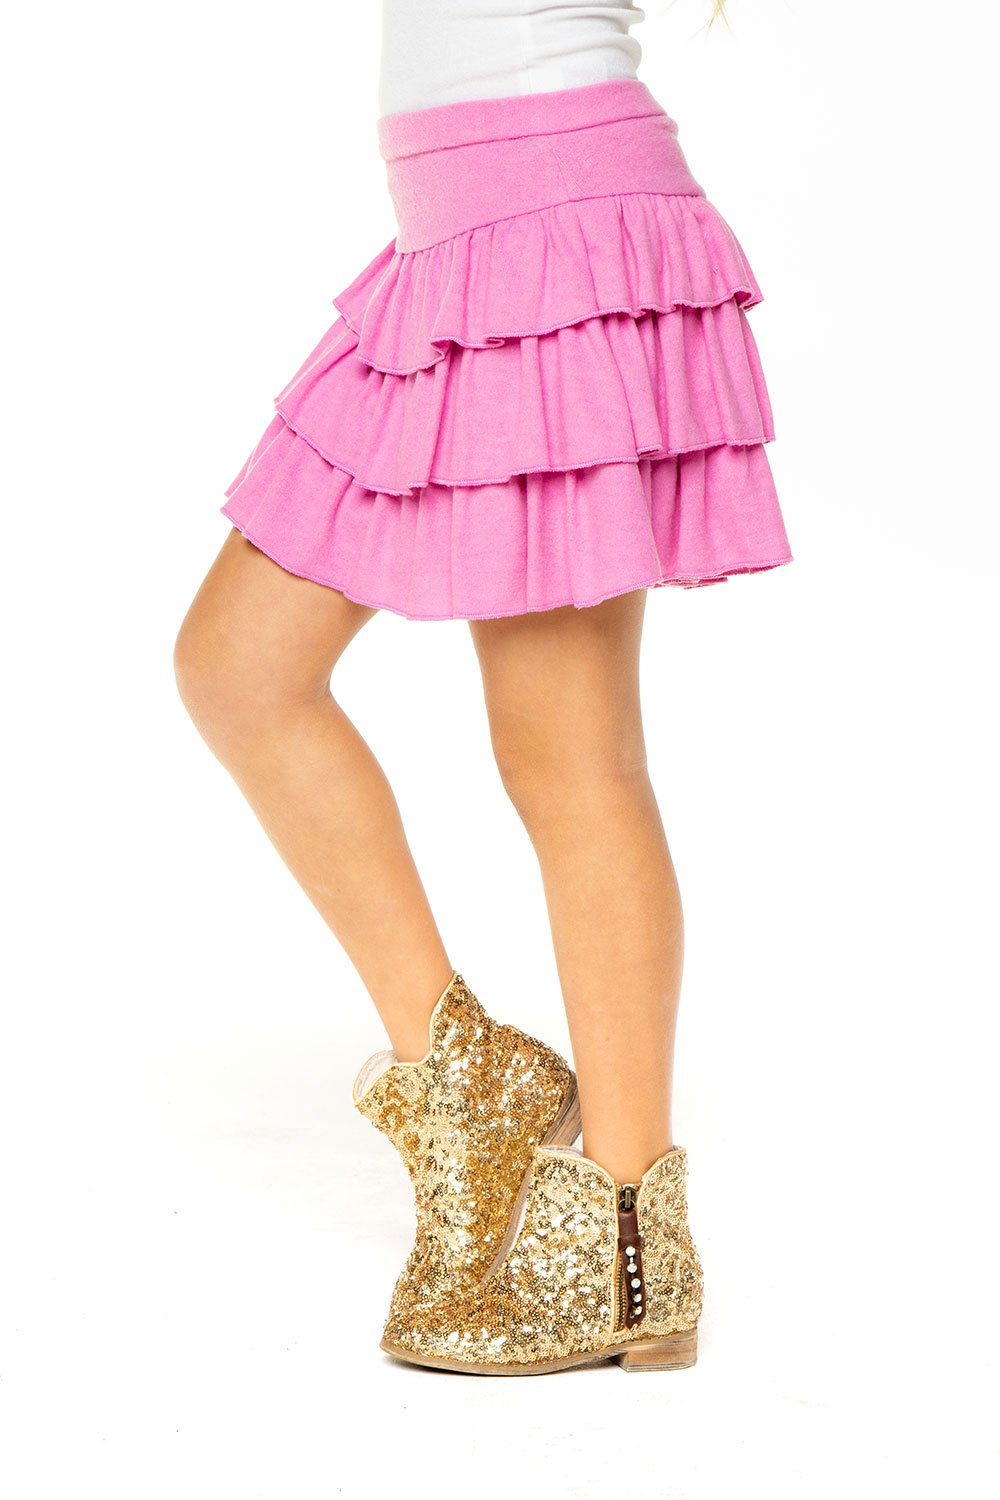 Girls Love Knit Tiered Ruffle Skort - Pink Lady